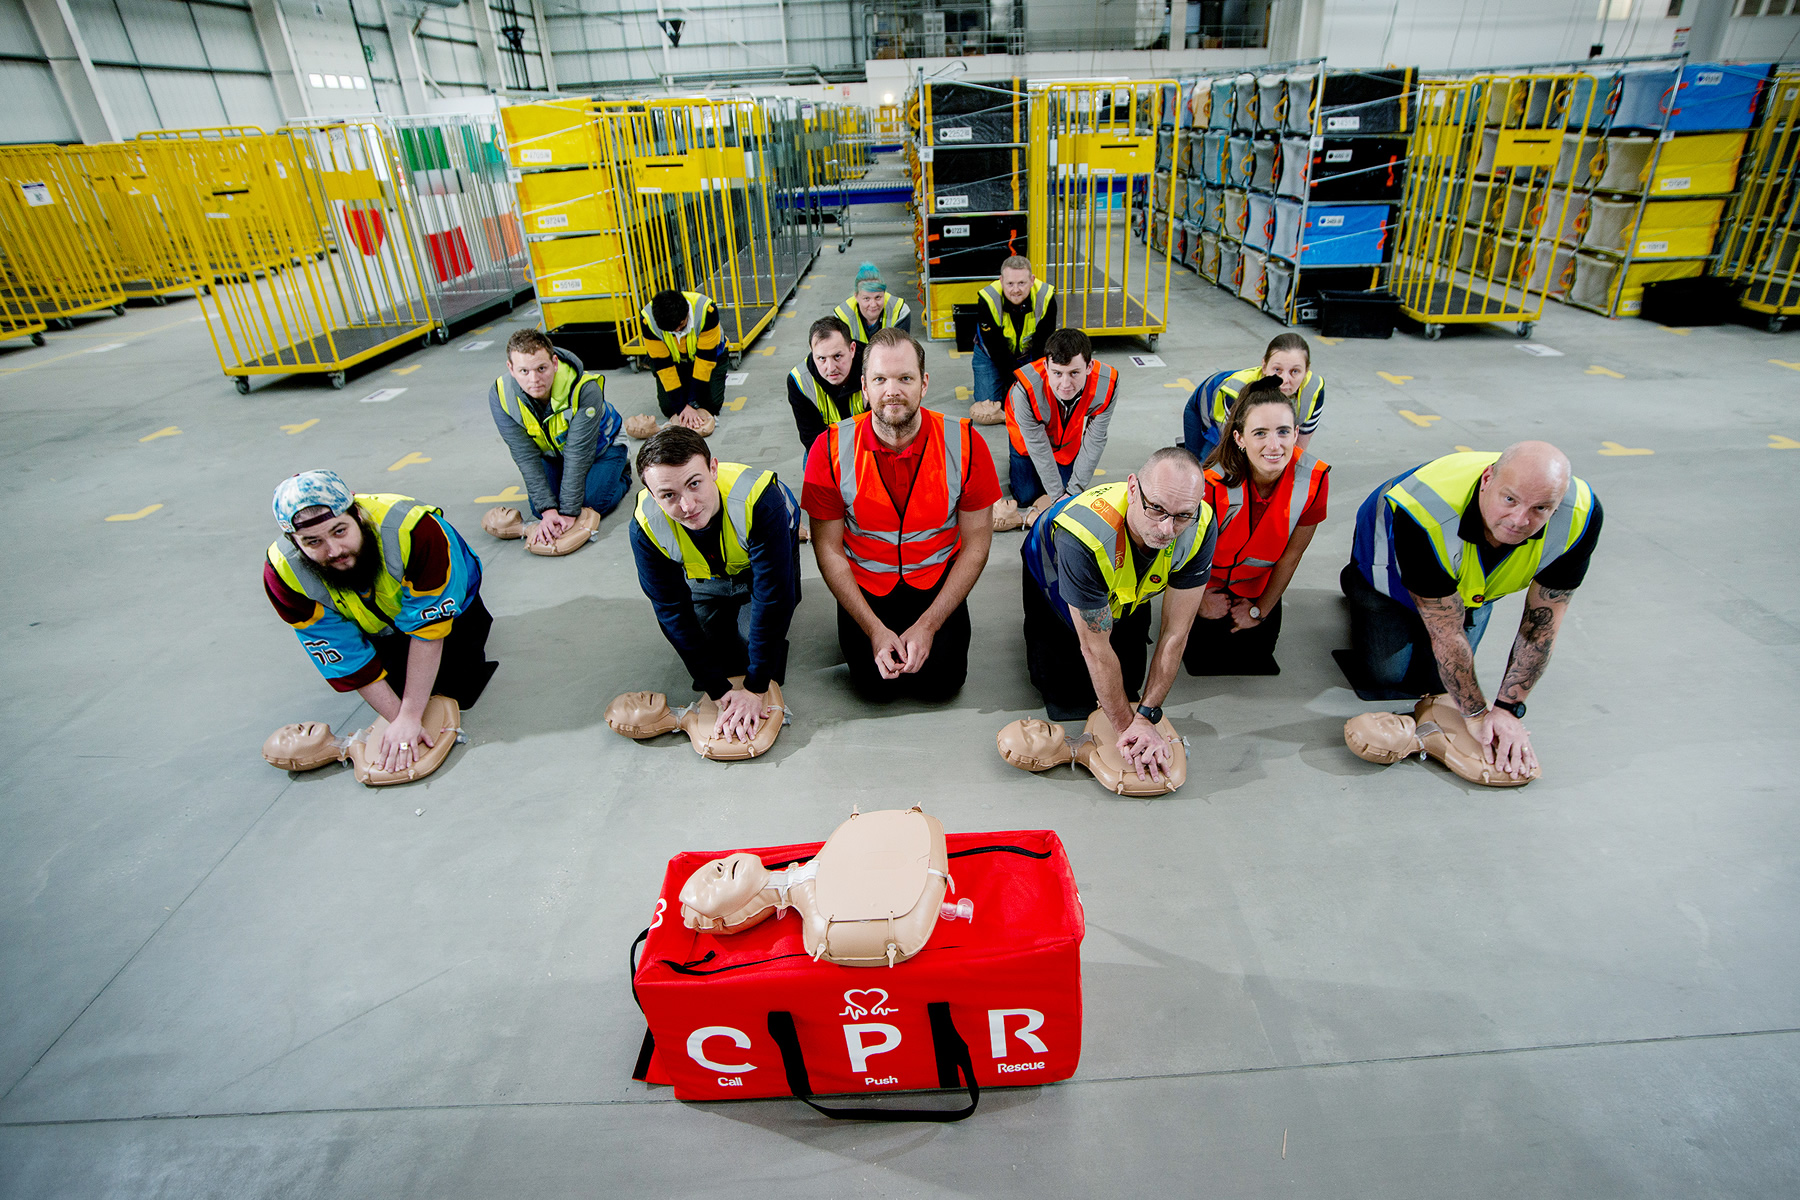 British Heart Foundation trainers teaching Weybridge Amazon workers how to become CPR trainers